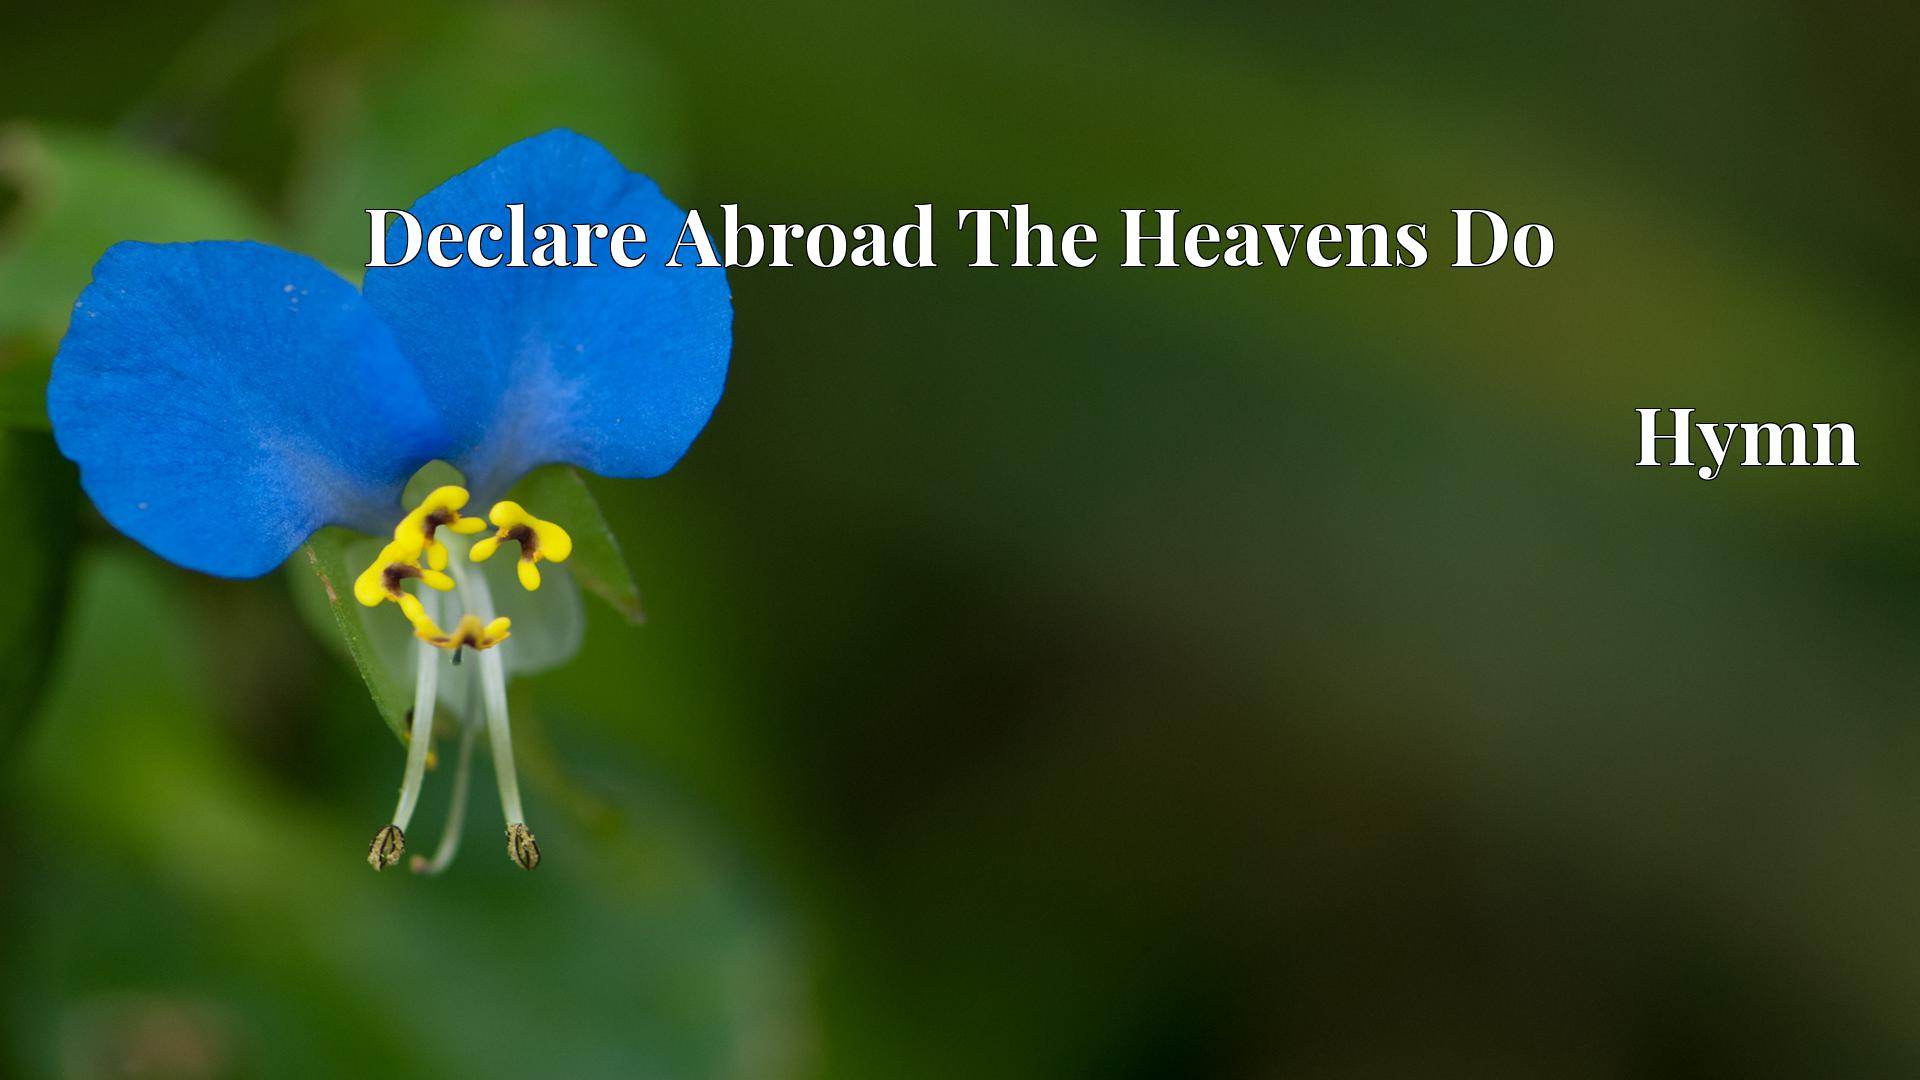 Declare Abroad The Heavens Do - Hymn